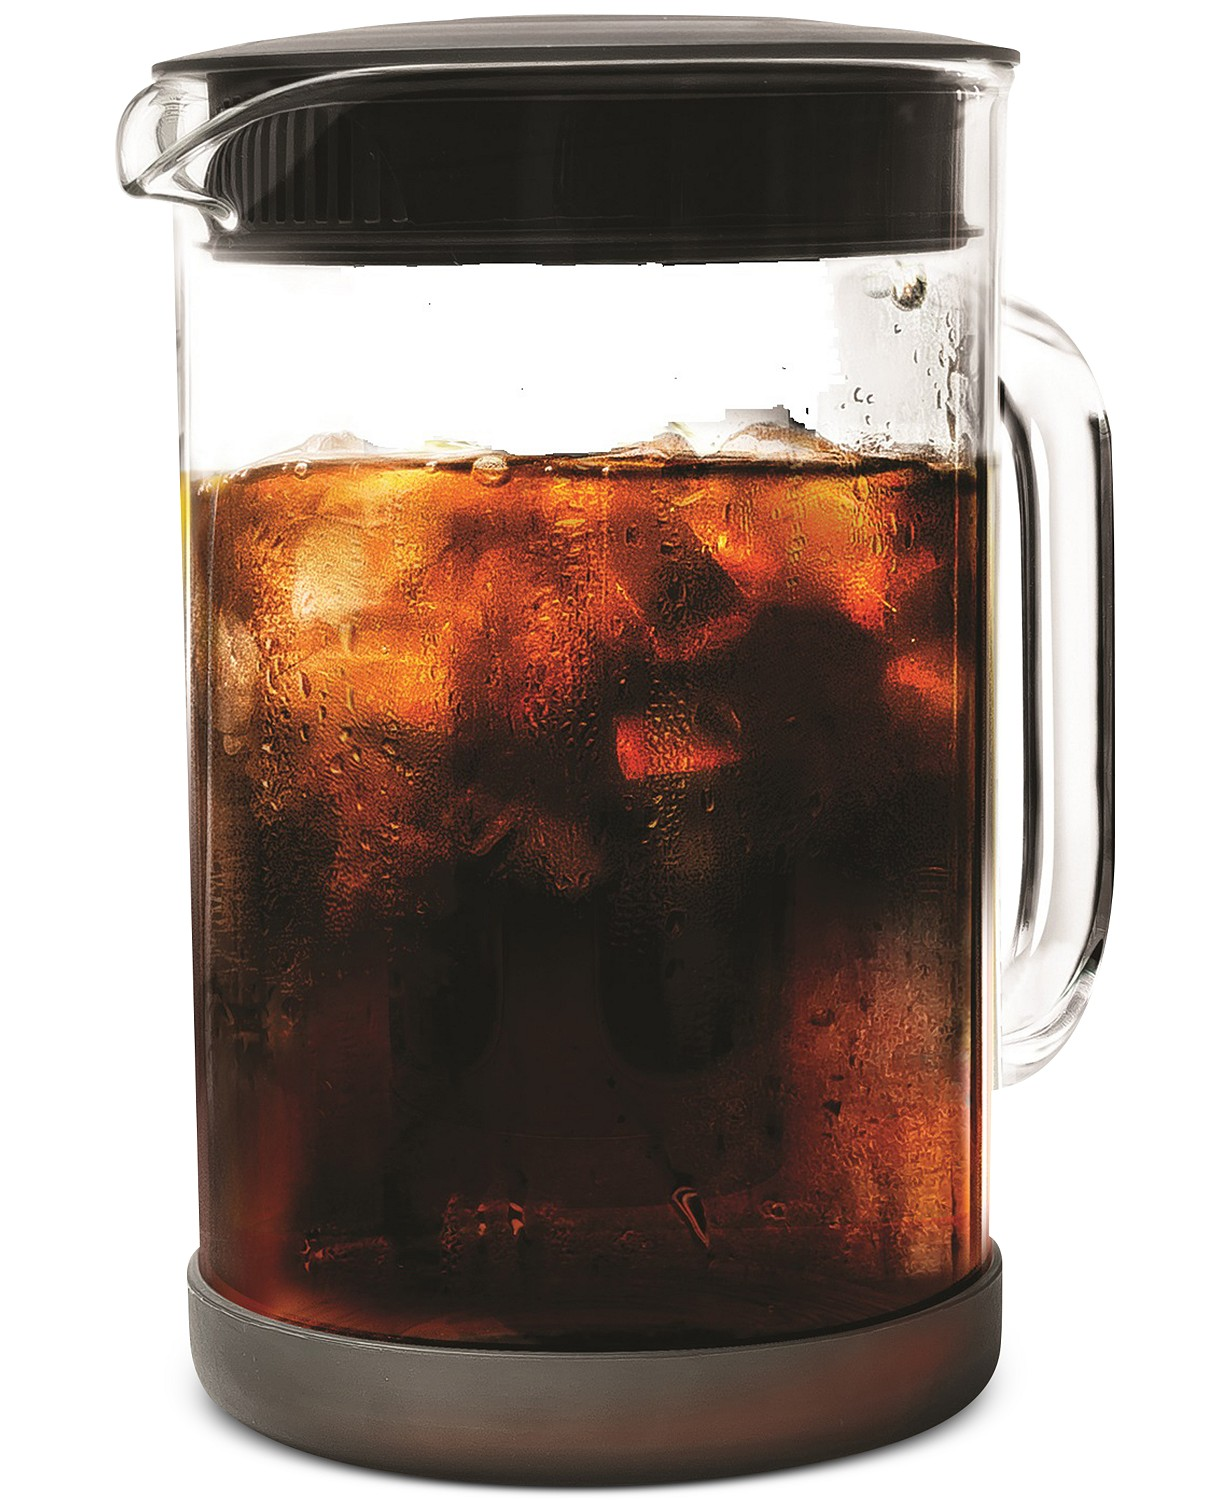 Primula Pace Cold Brew 51-Oz. Coffee Maker